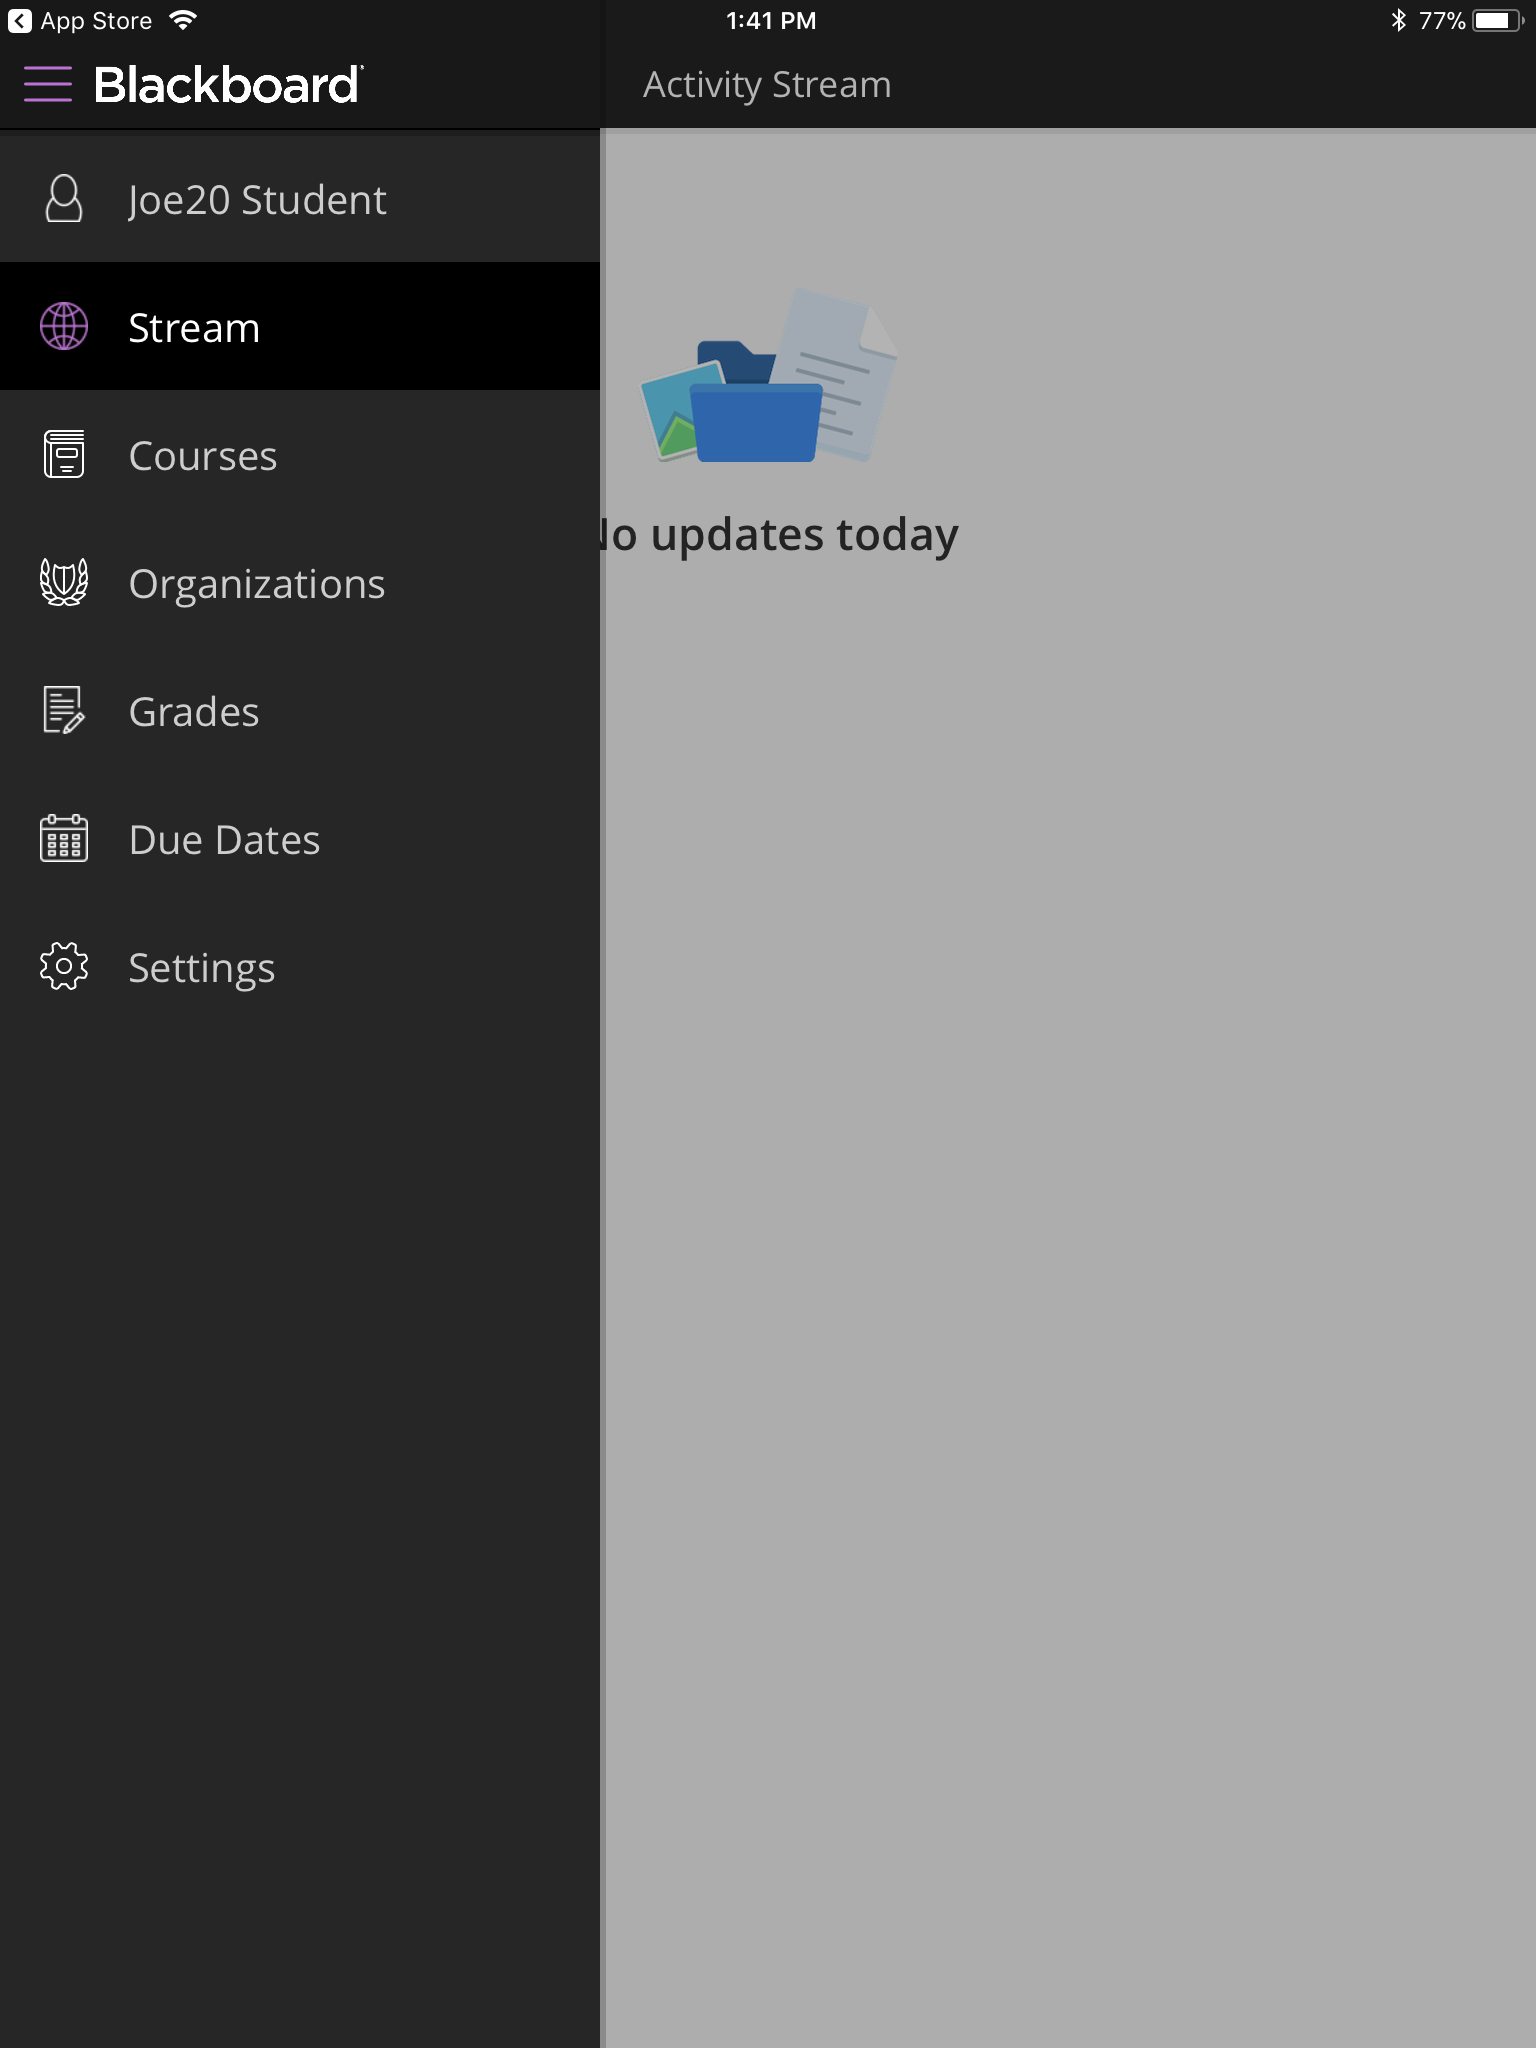 Activity Stream Access Menu